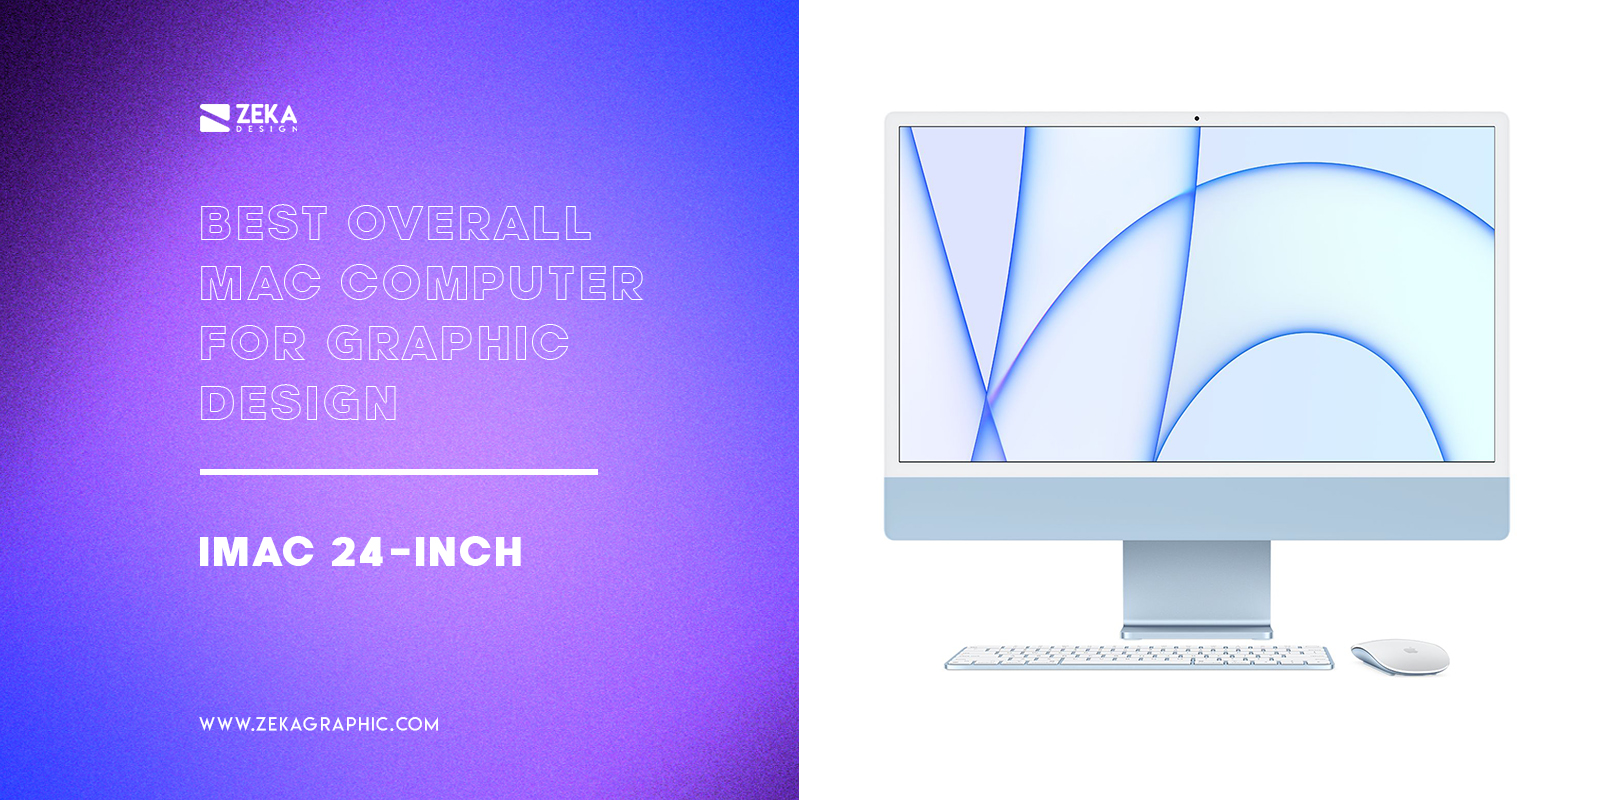 iMac 24 inch Best Overall Mac Computer For Graphic Design